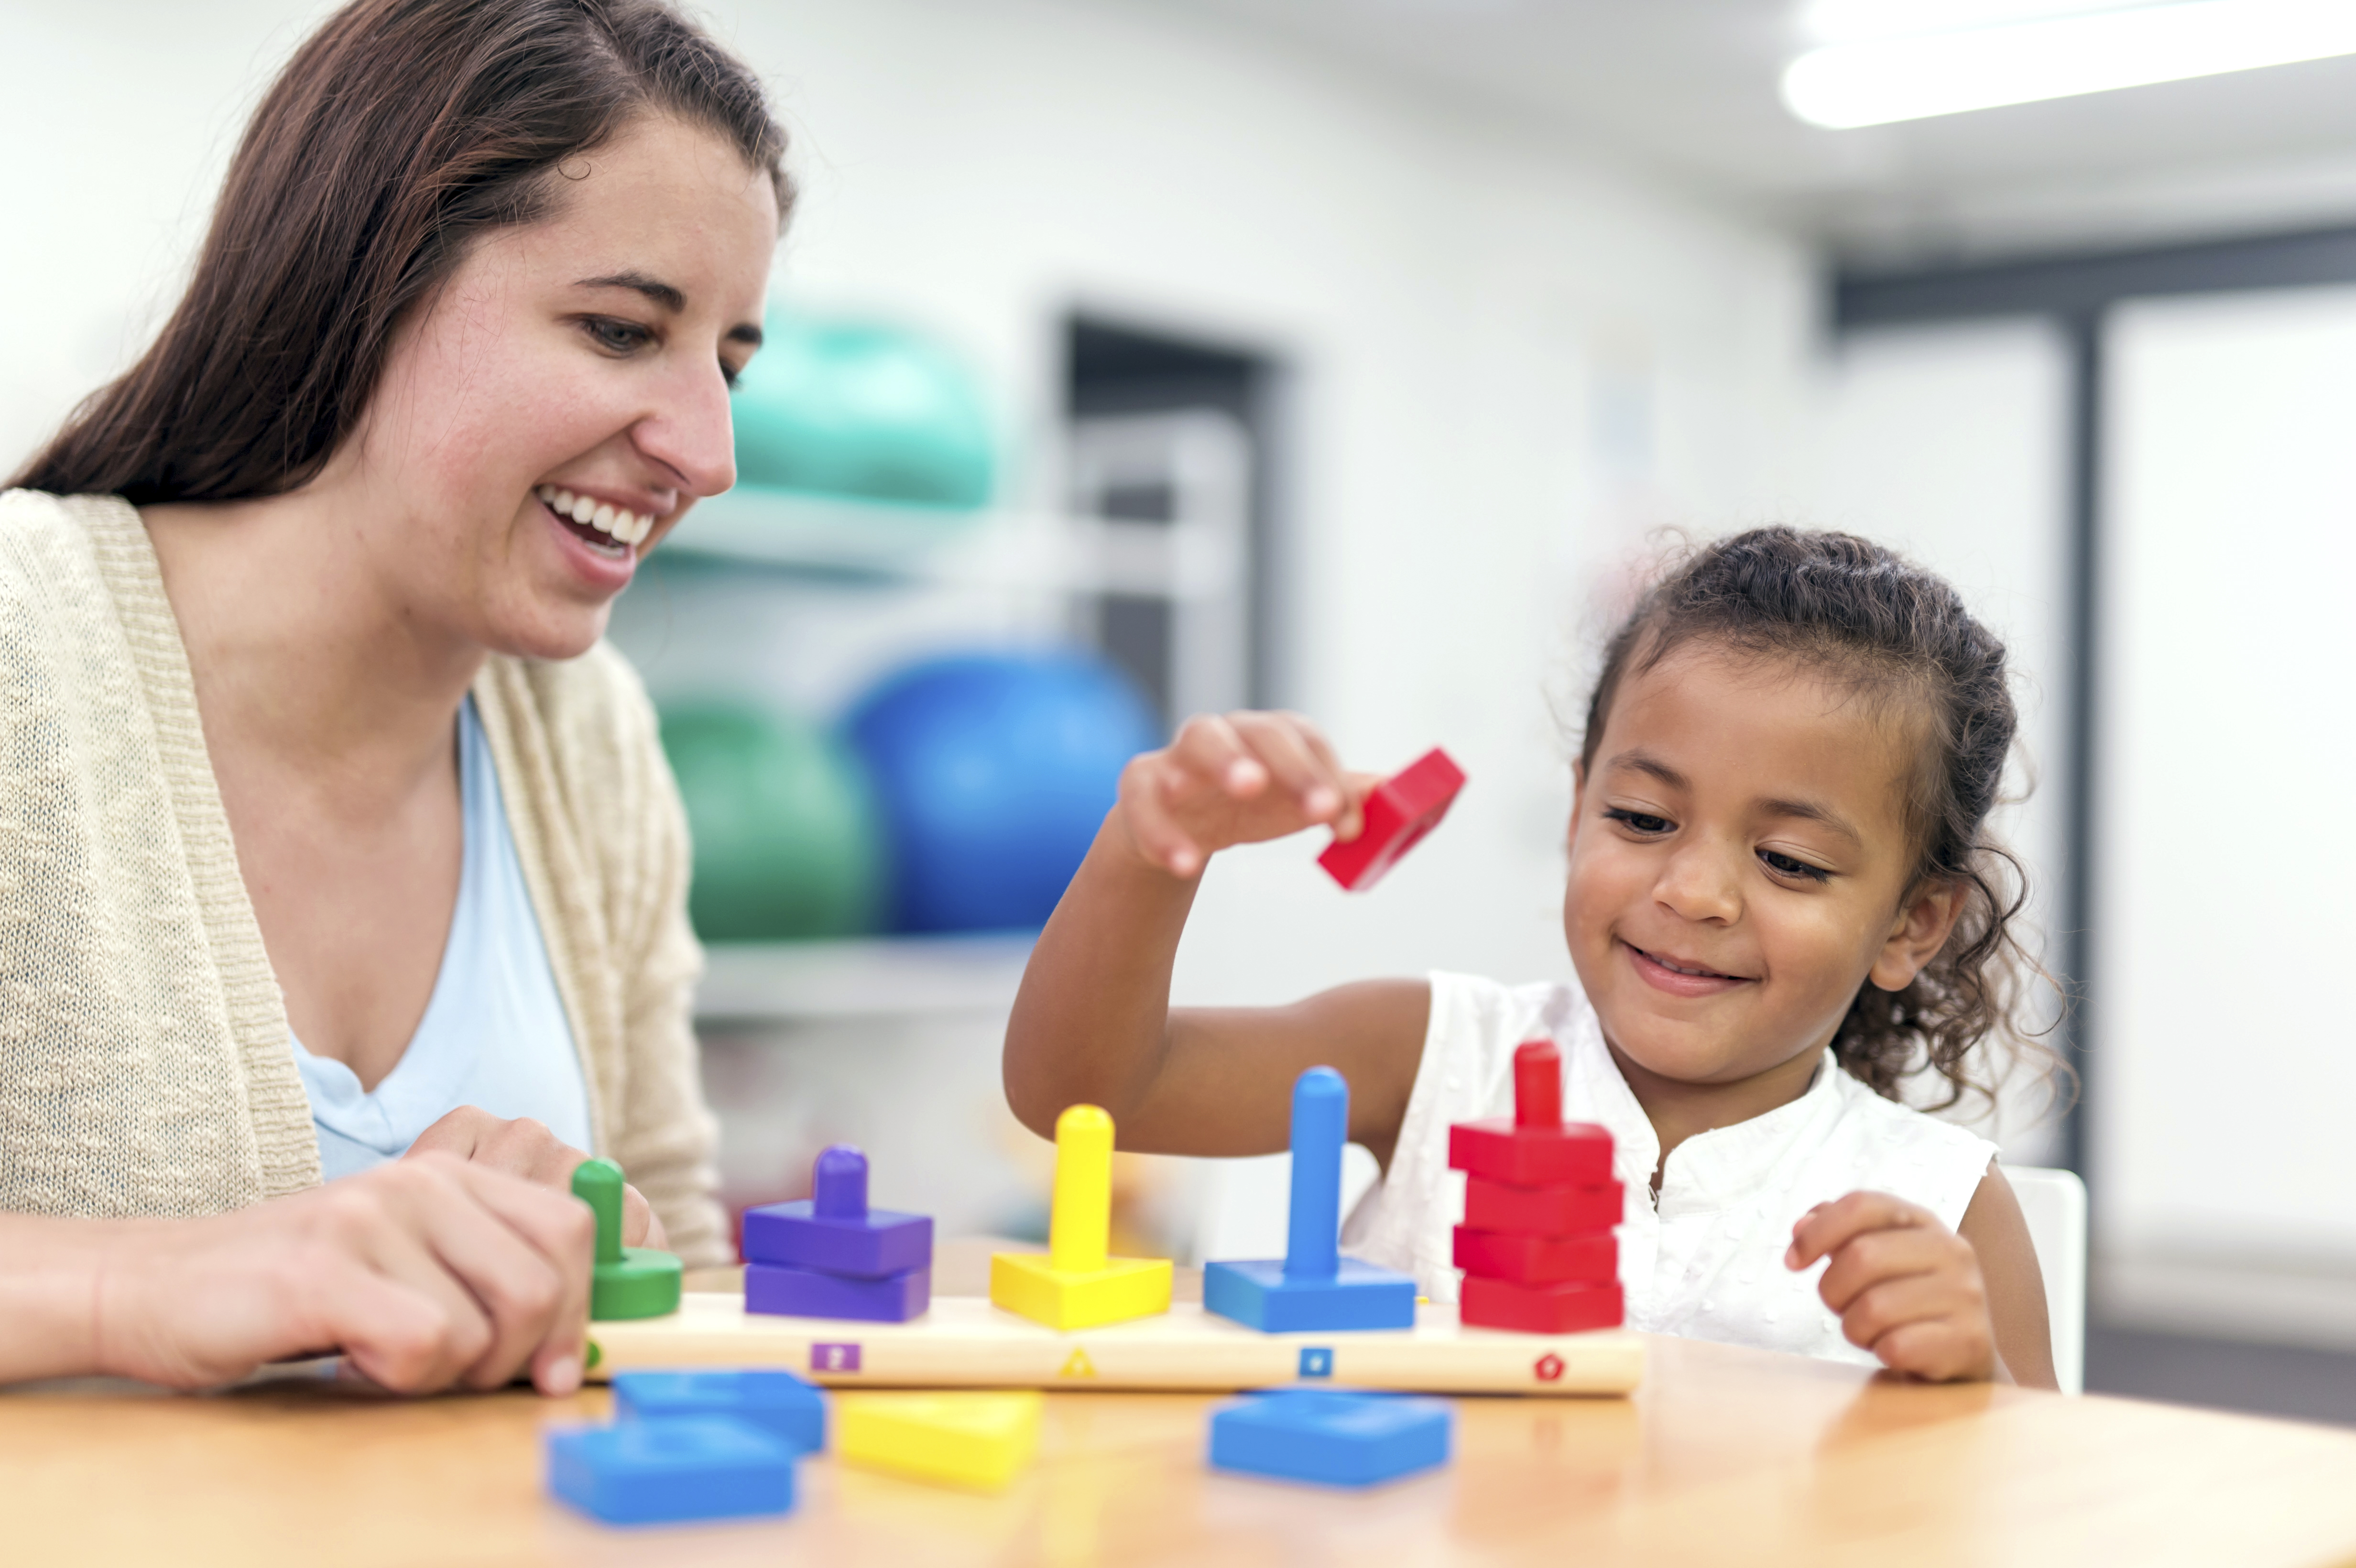 Early childhood intervention client engages in occupational therapy